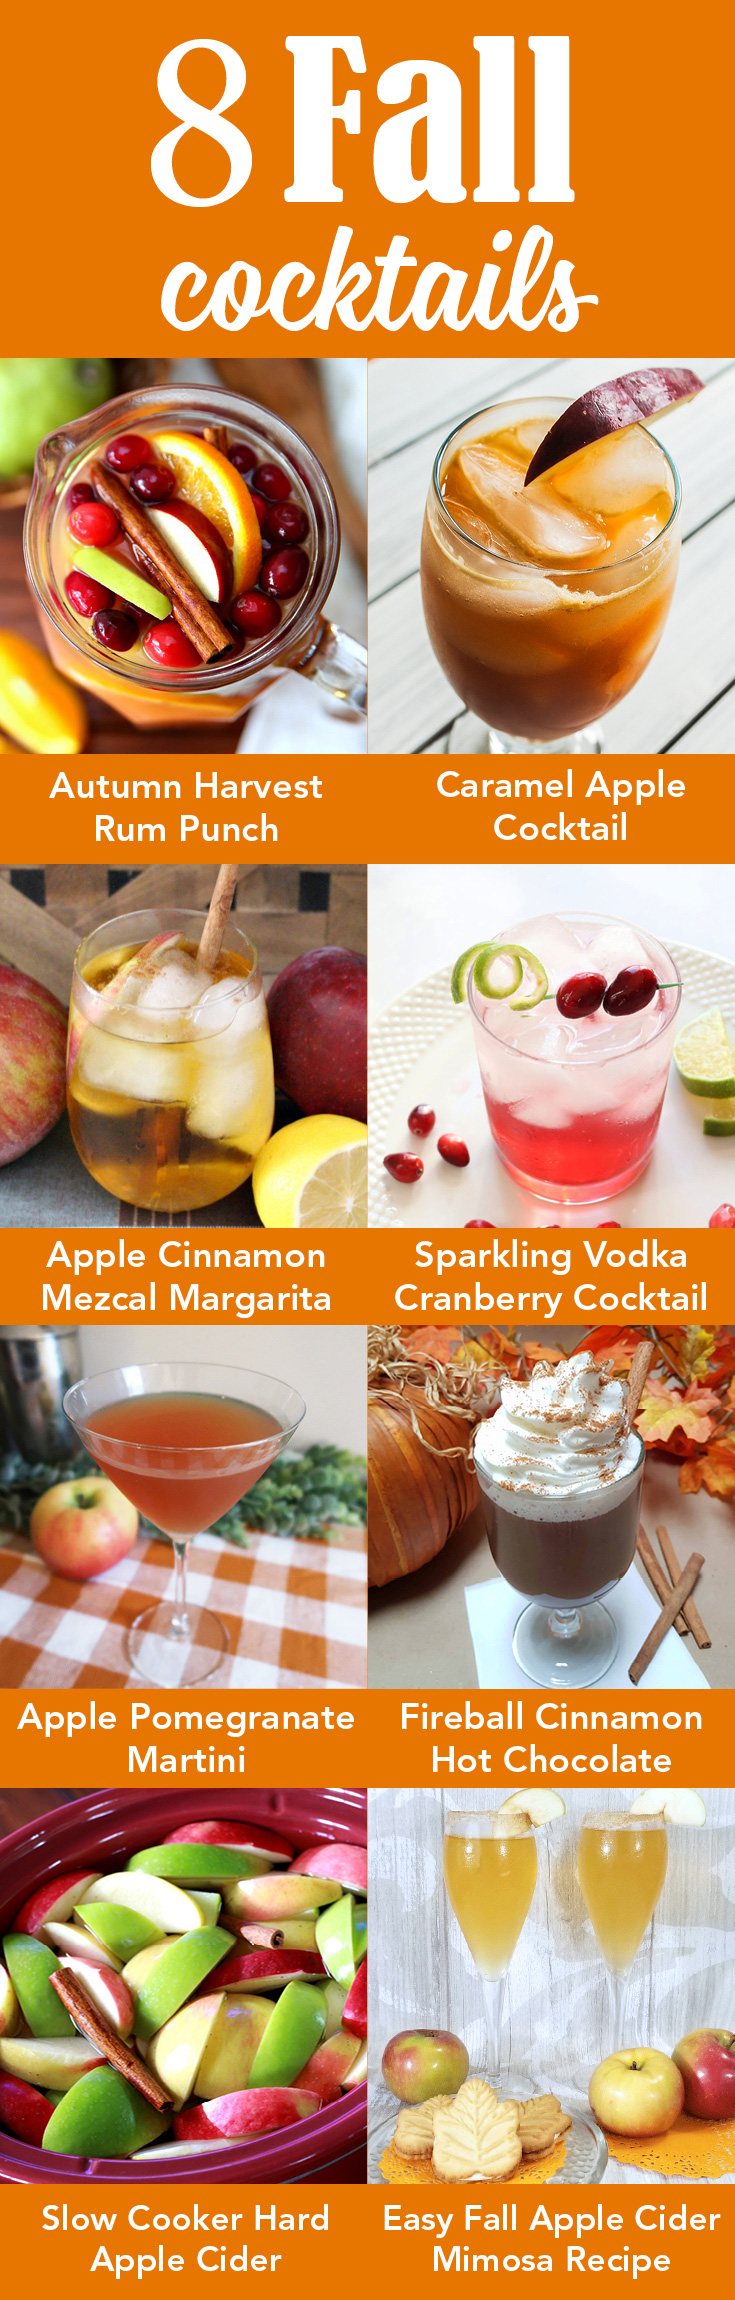 8-Fall-Cocktails.jpg